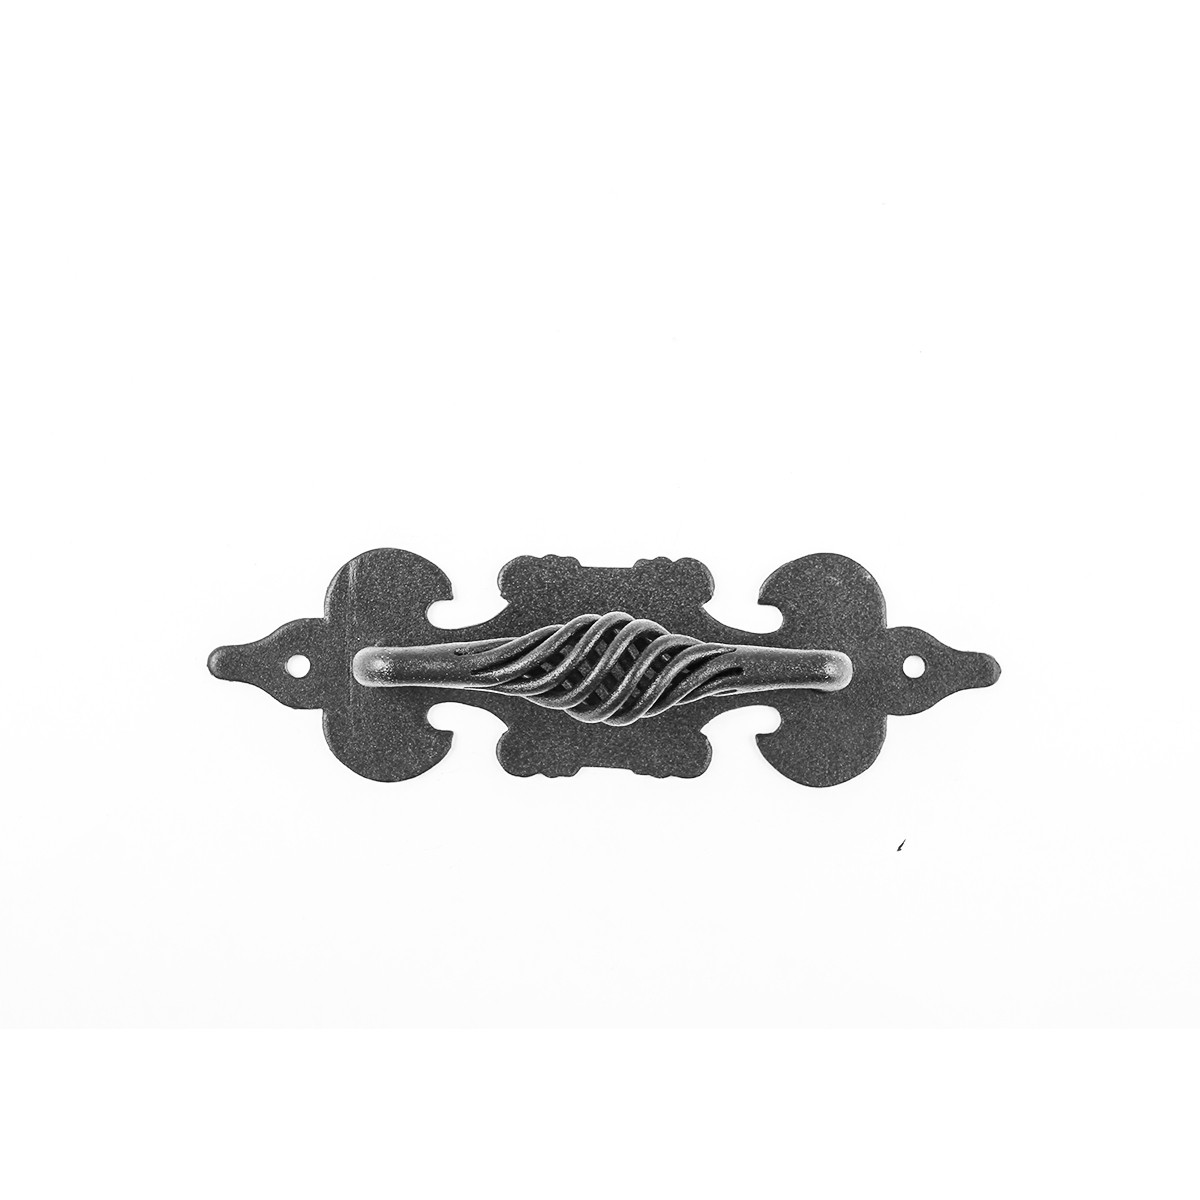 4 Cabinet Pull Birdcage Black Wrought Iron 6 Furniture Hardware Cabinet Pull Cabinet Hardware